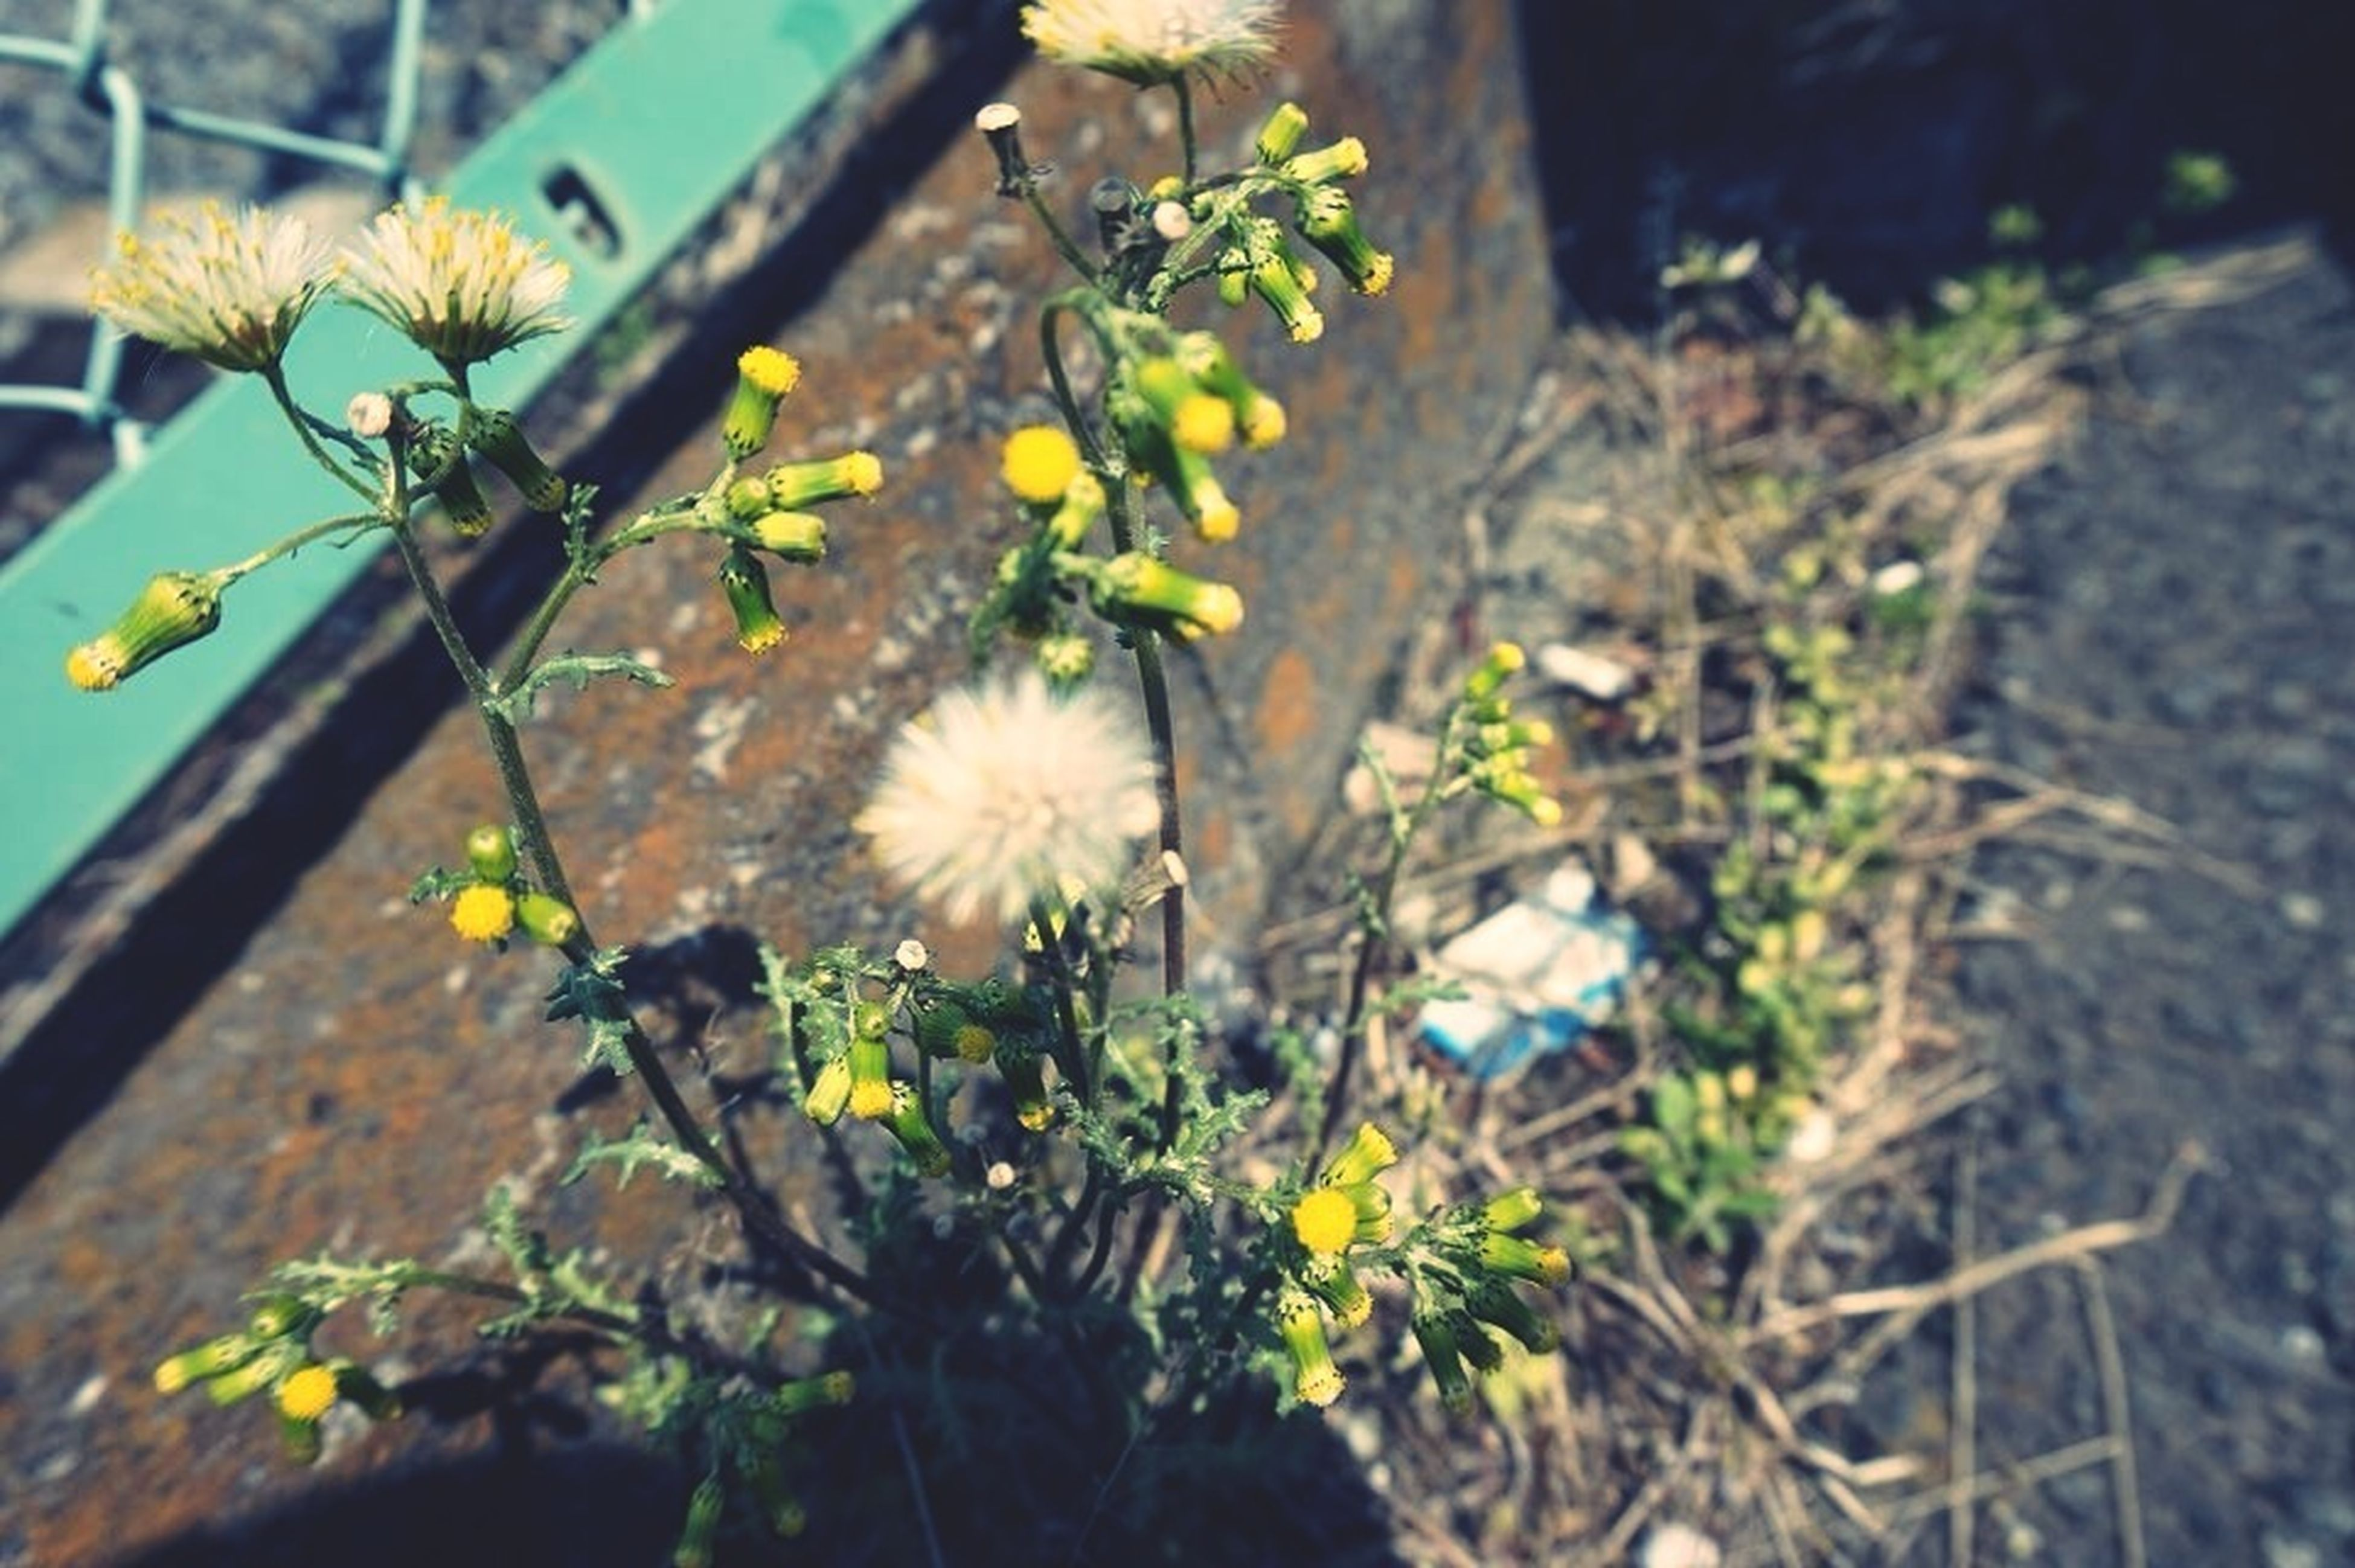 flower, growth, fragility, freshness, plant, petal, nature, beauty in nature, blooming, close-up, yellow, animal themes, in bloom, one animal, focus on foreground, leaf, white color, flower head, selective focus, outdoors